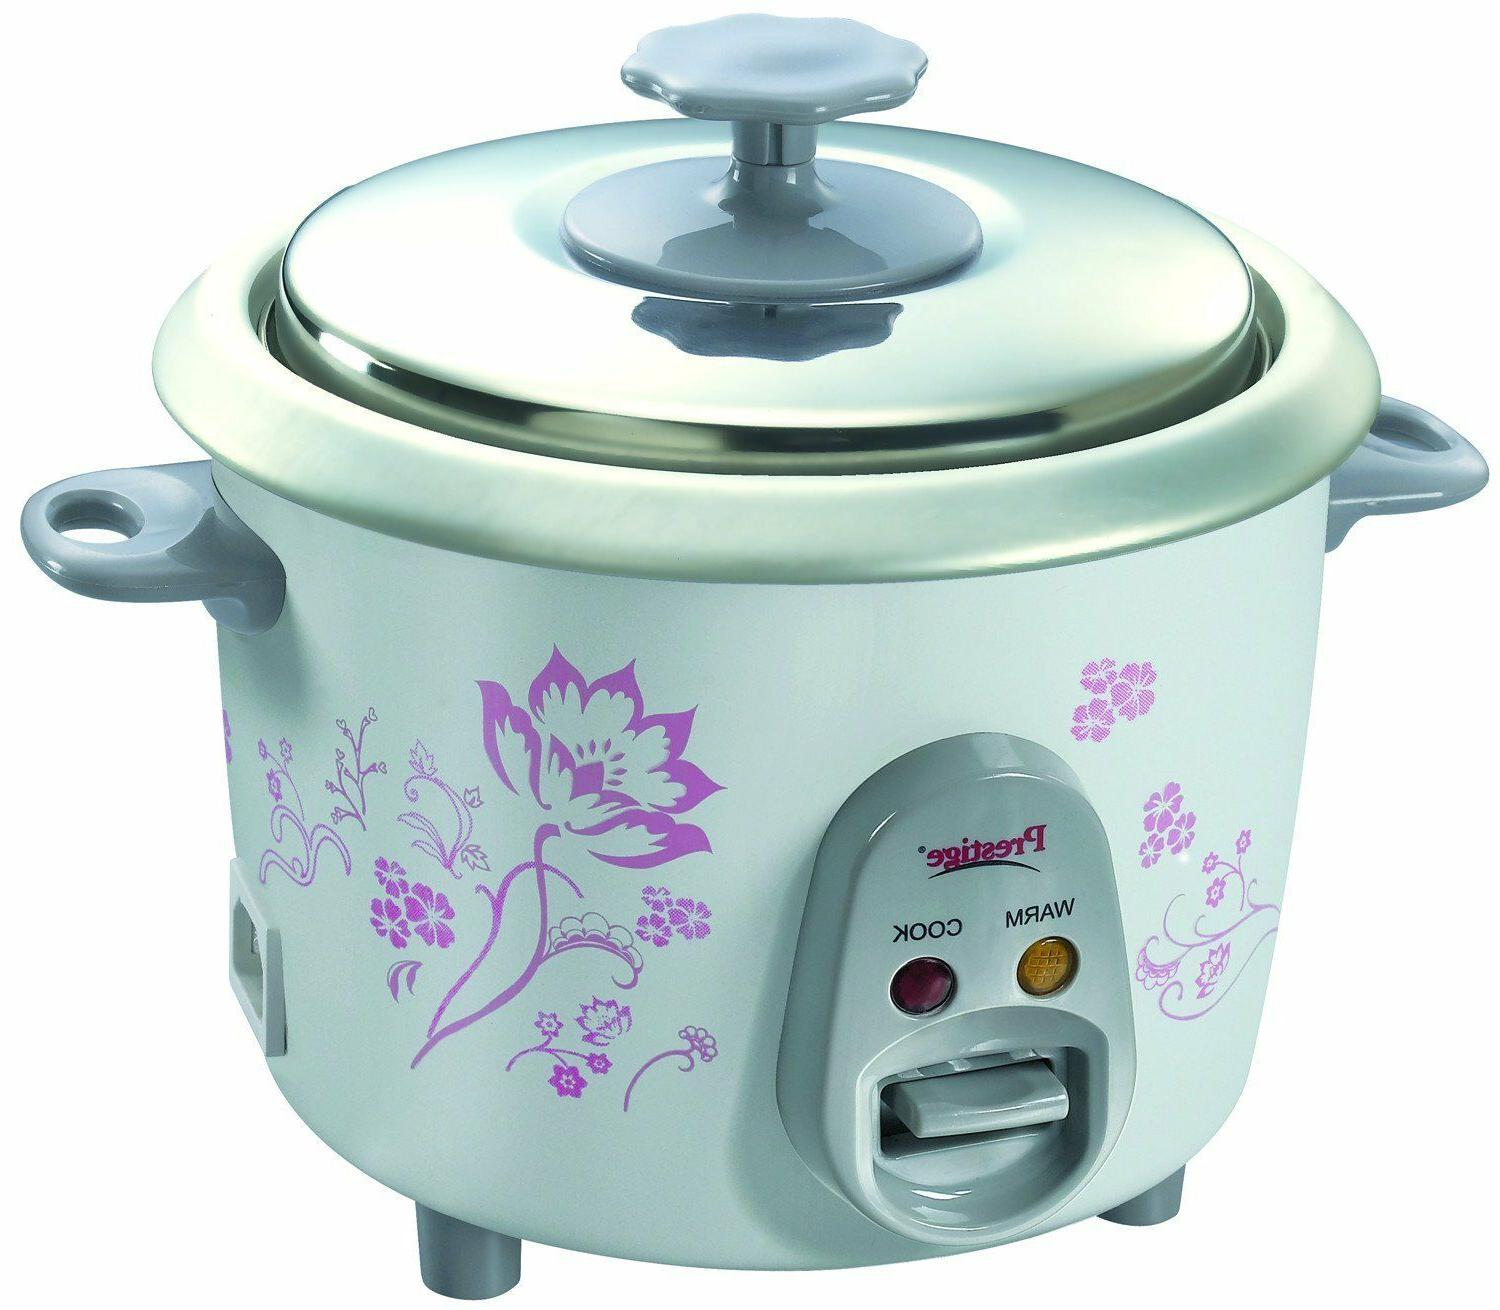 delight electric rice cooker prwo 300w steamer